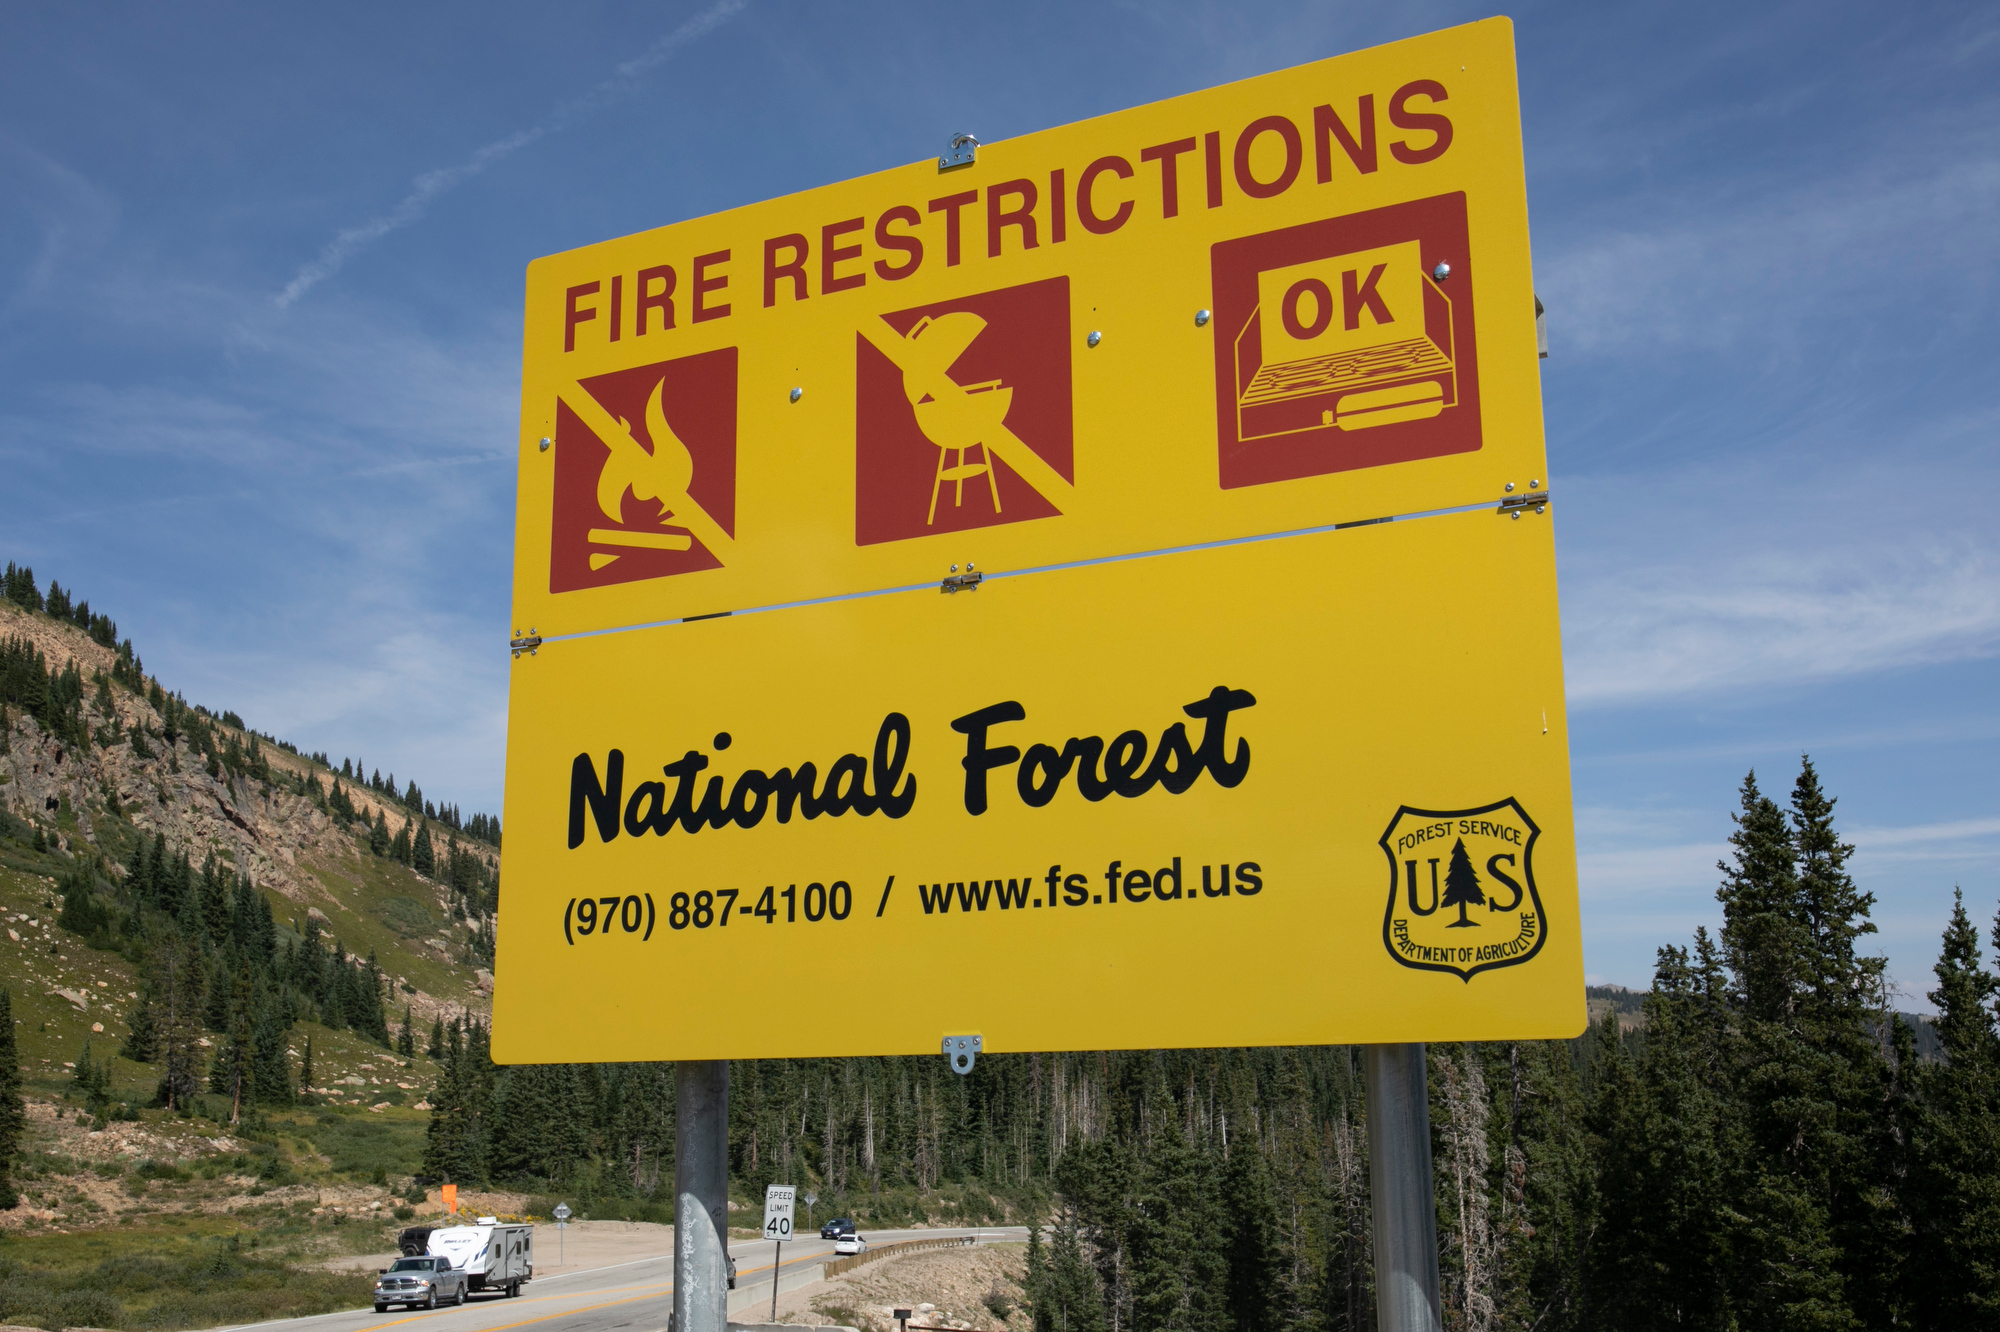 WILLIAMS FORK FIRE INTERAGENCY INCIDENT COMMAND POST